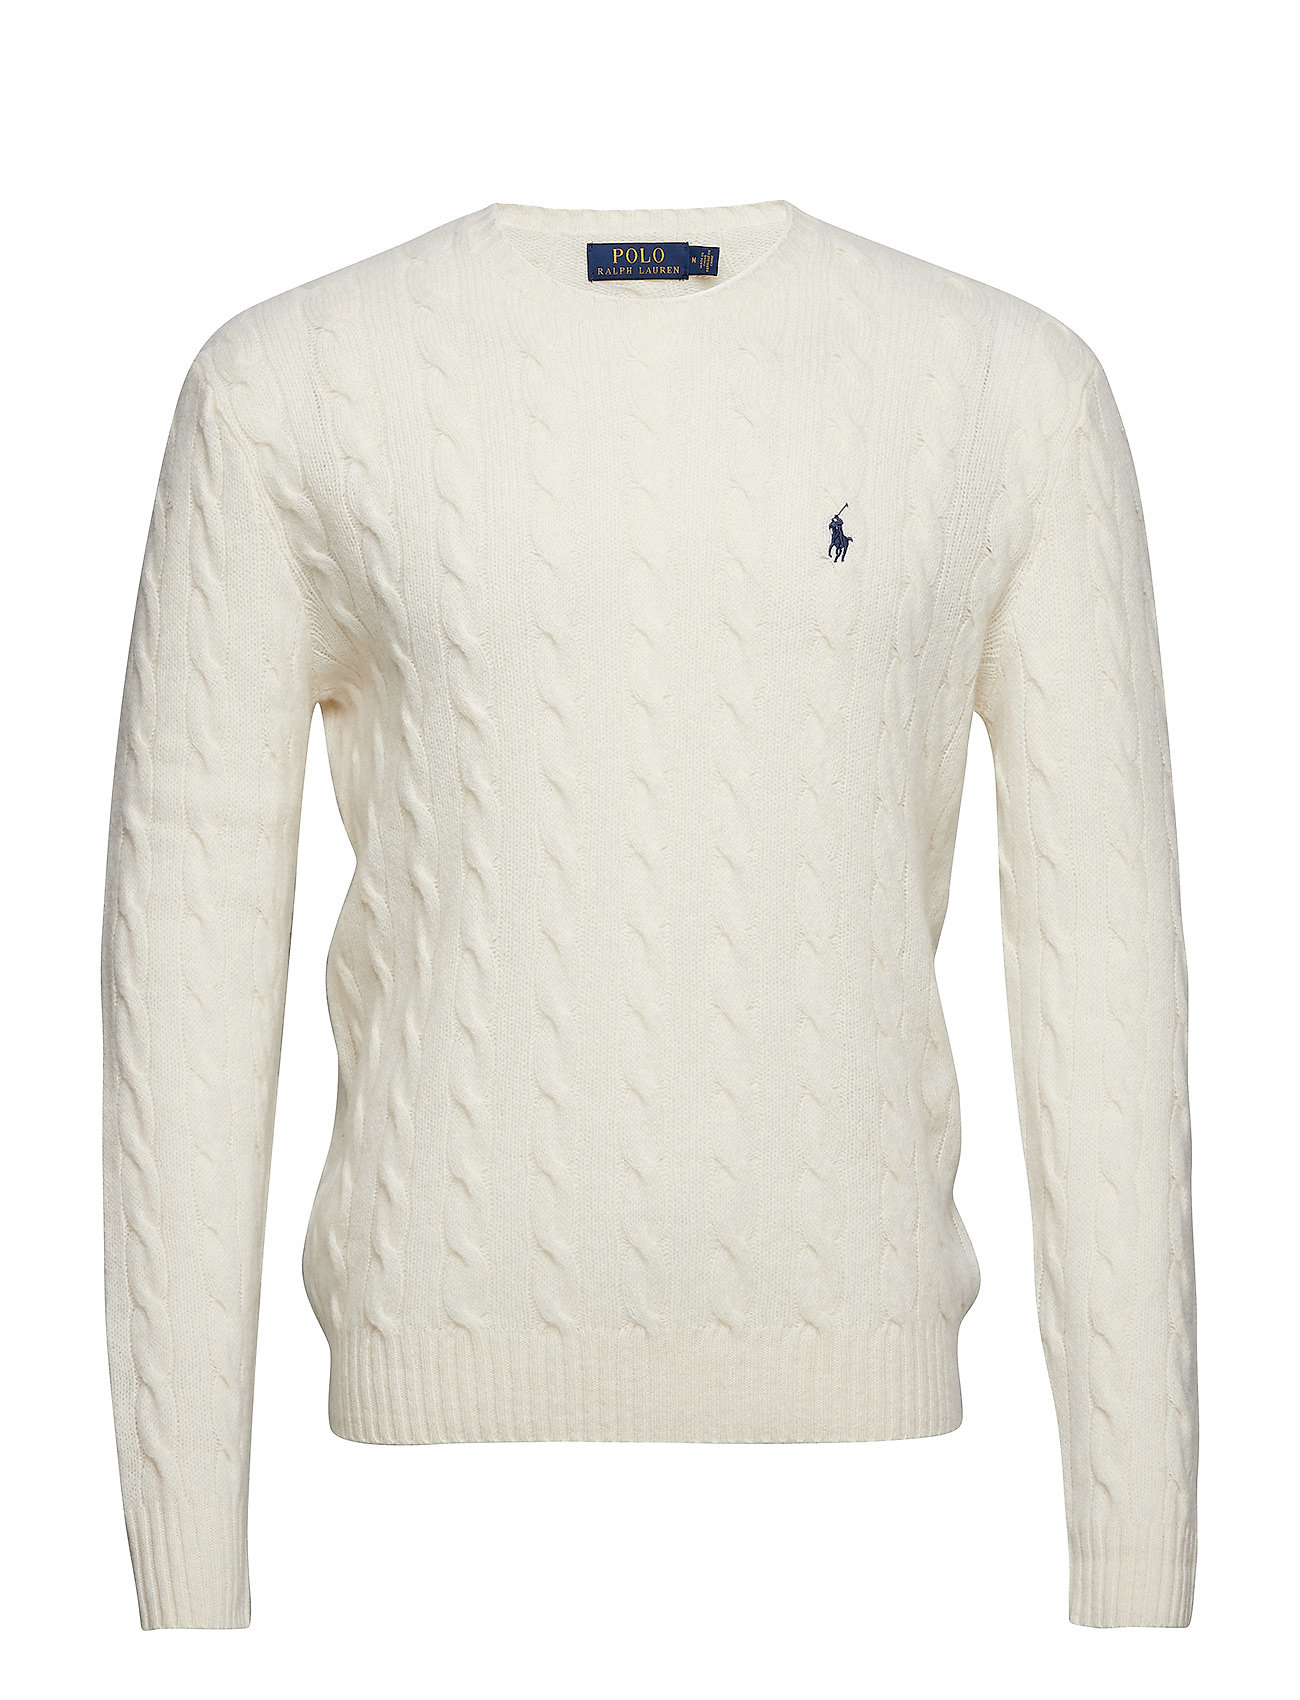 Polo Ralph Lauren LS CABLE CN-LONG SLEEVE-SWEATER - ANDOVER CREAM